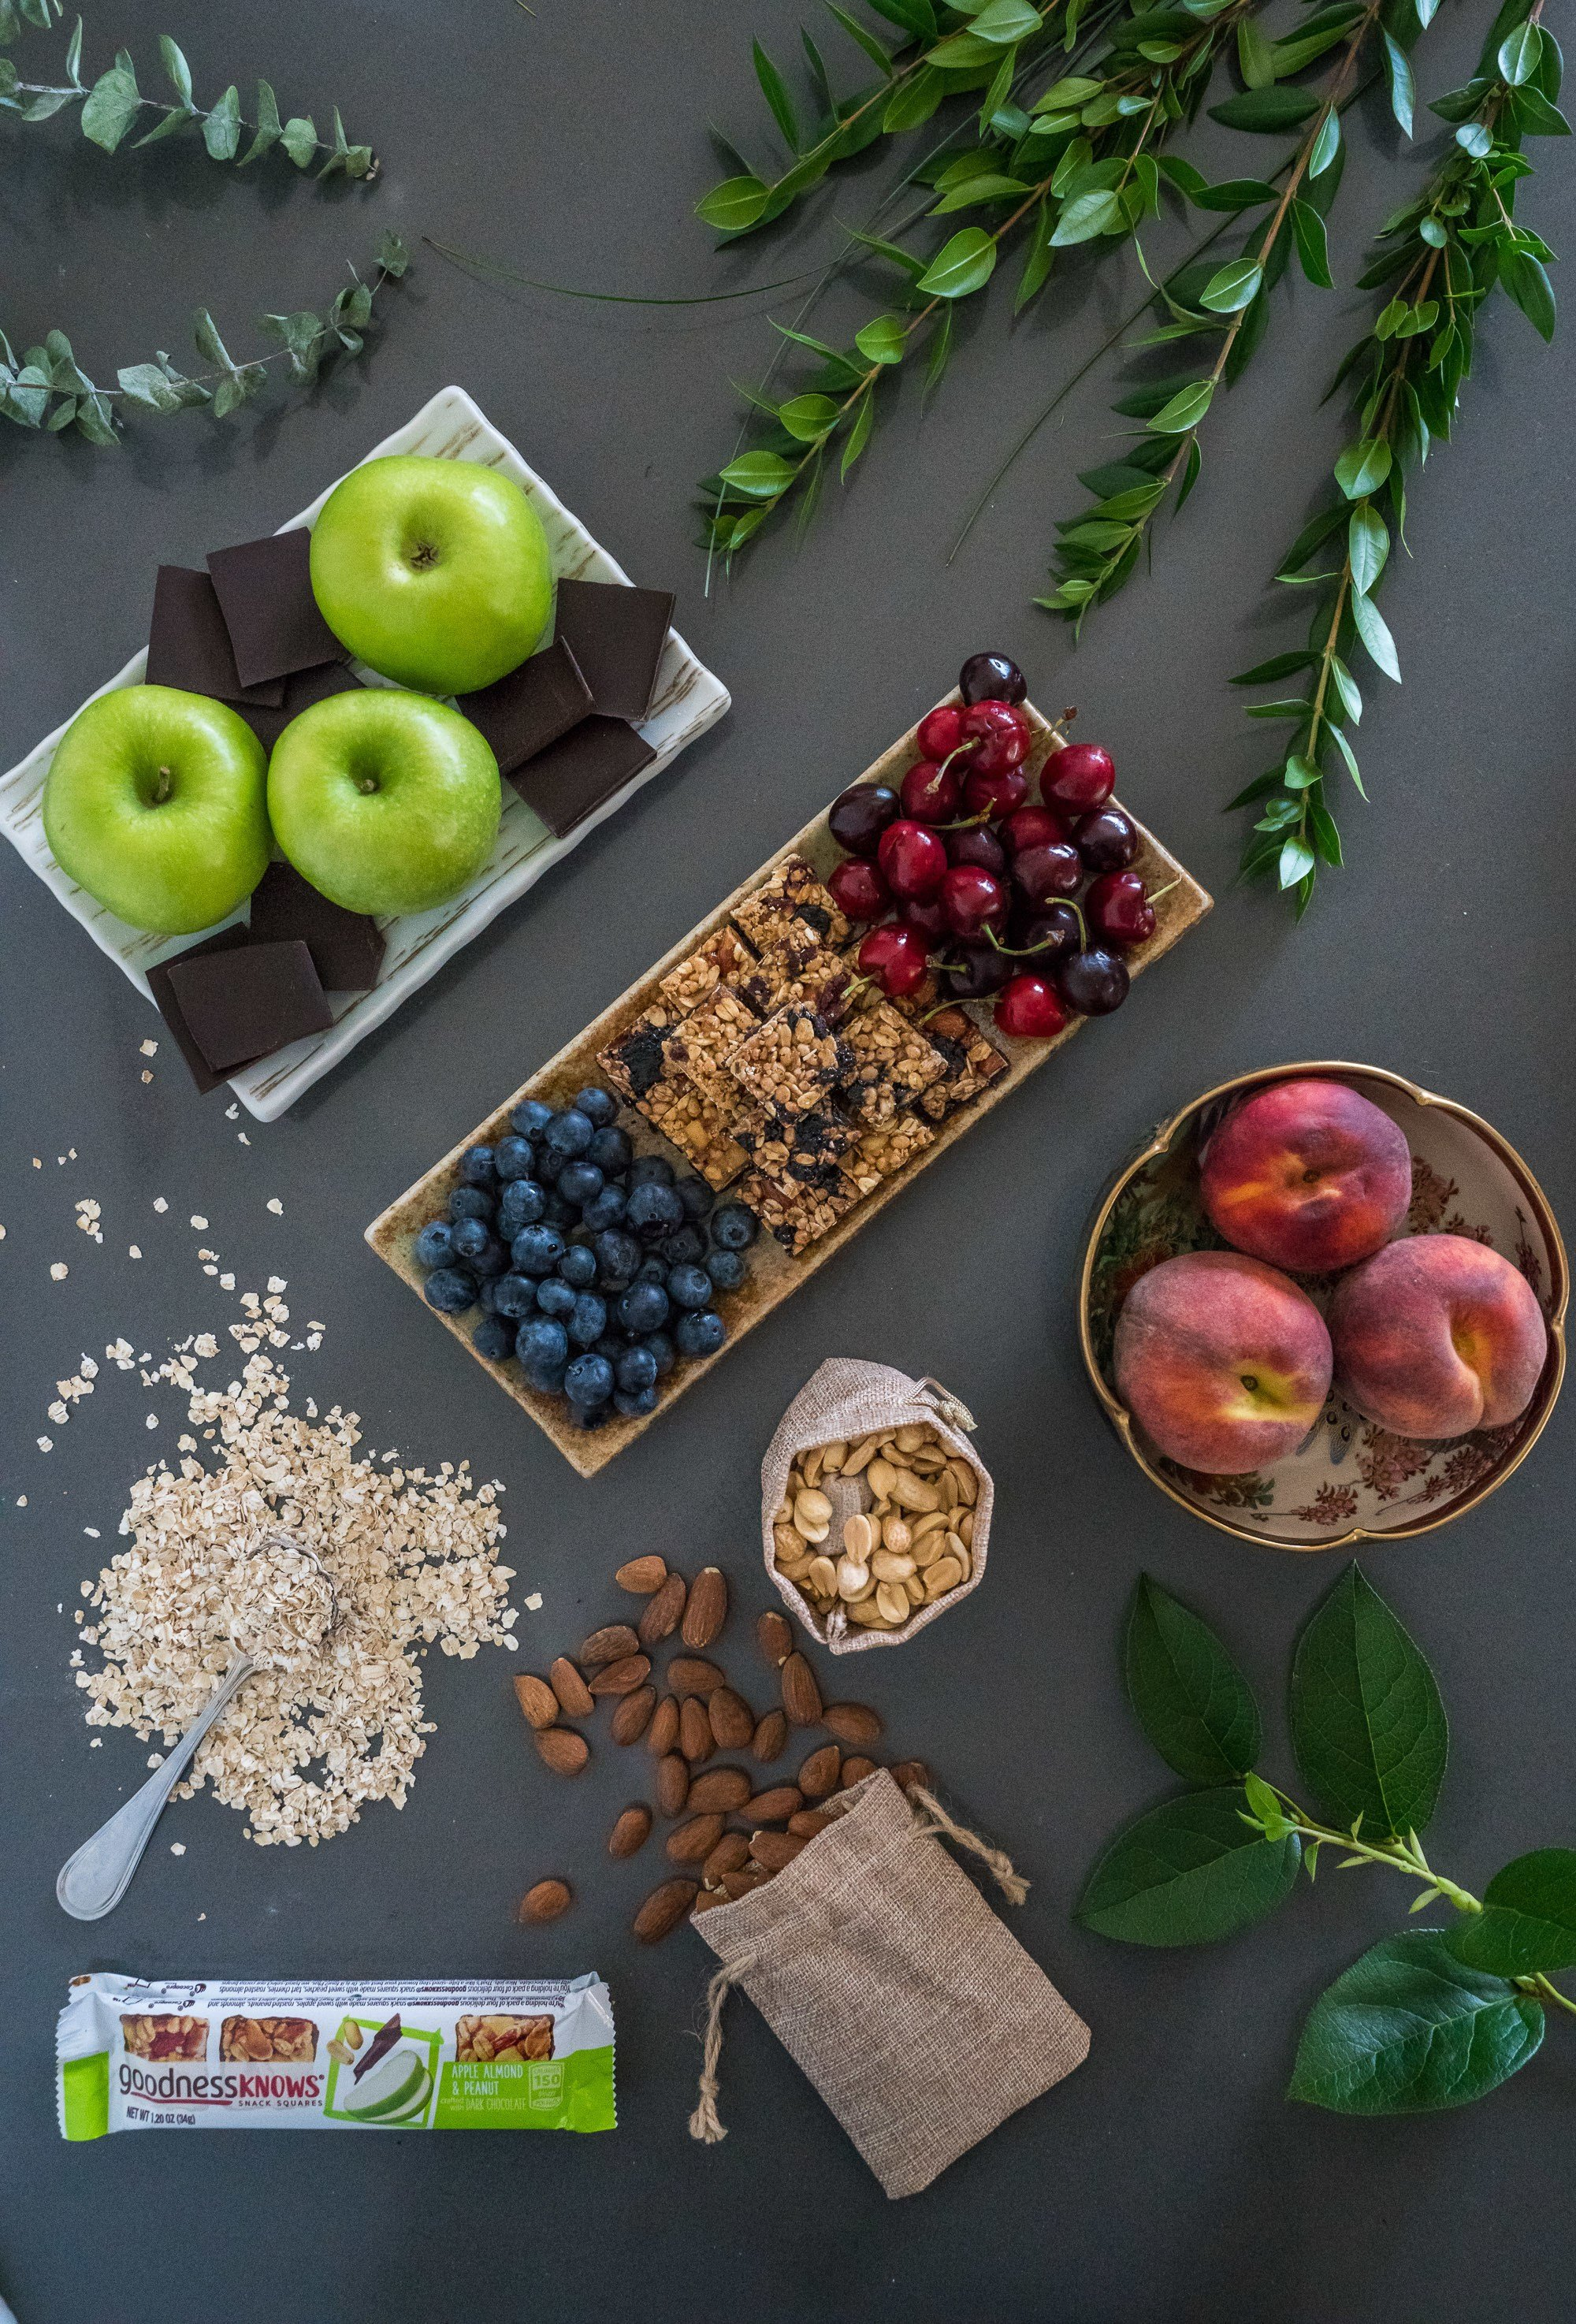 Fruit, nuts, chocolate and oats are the ingredients in a goodnessknows snack square.